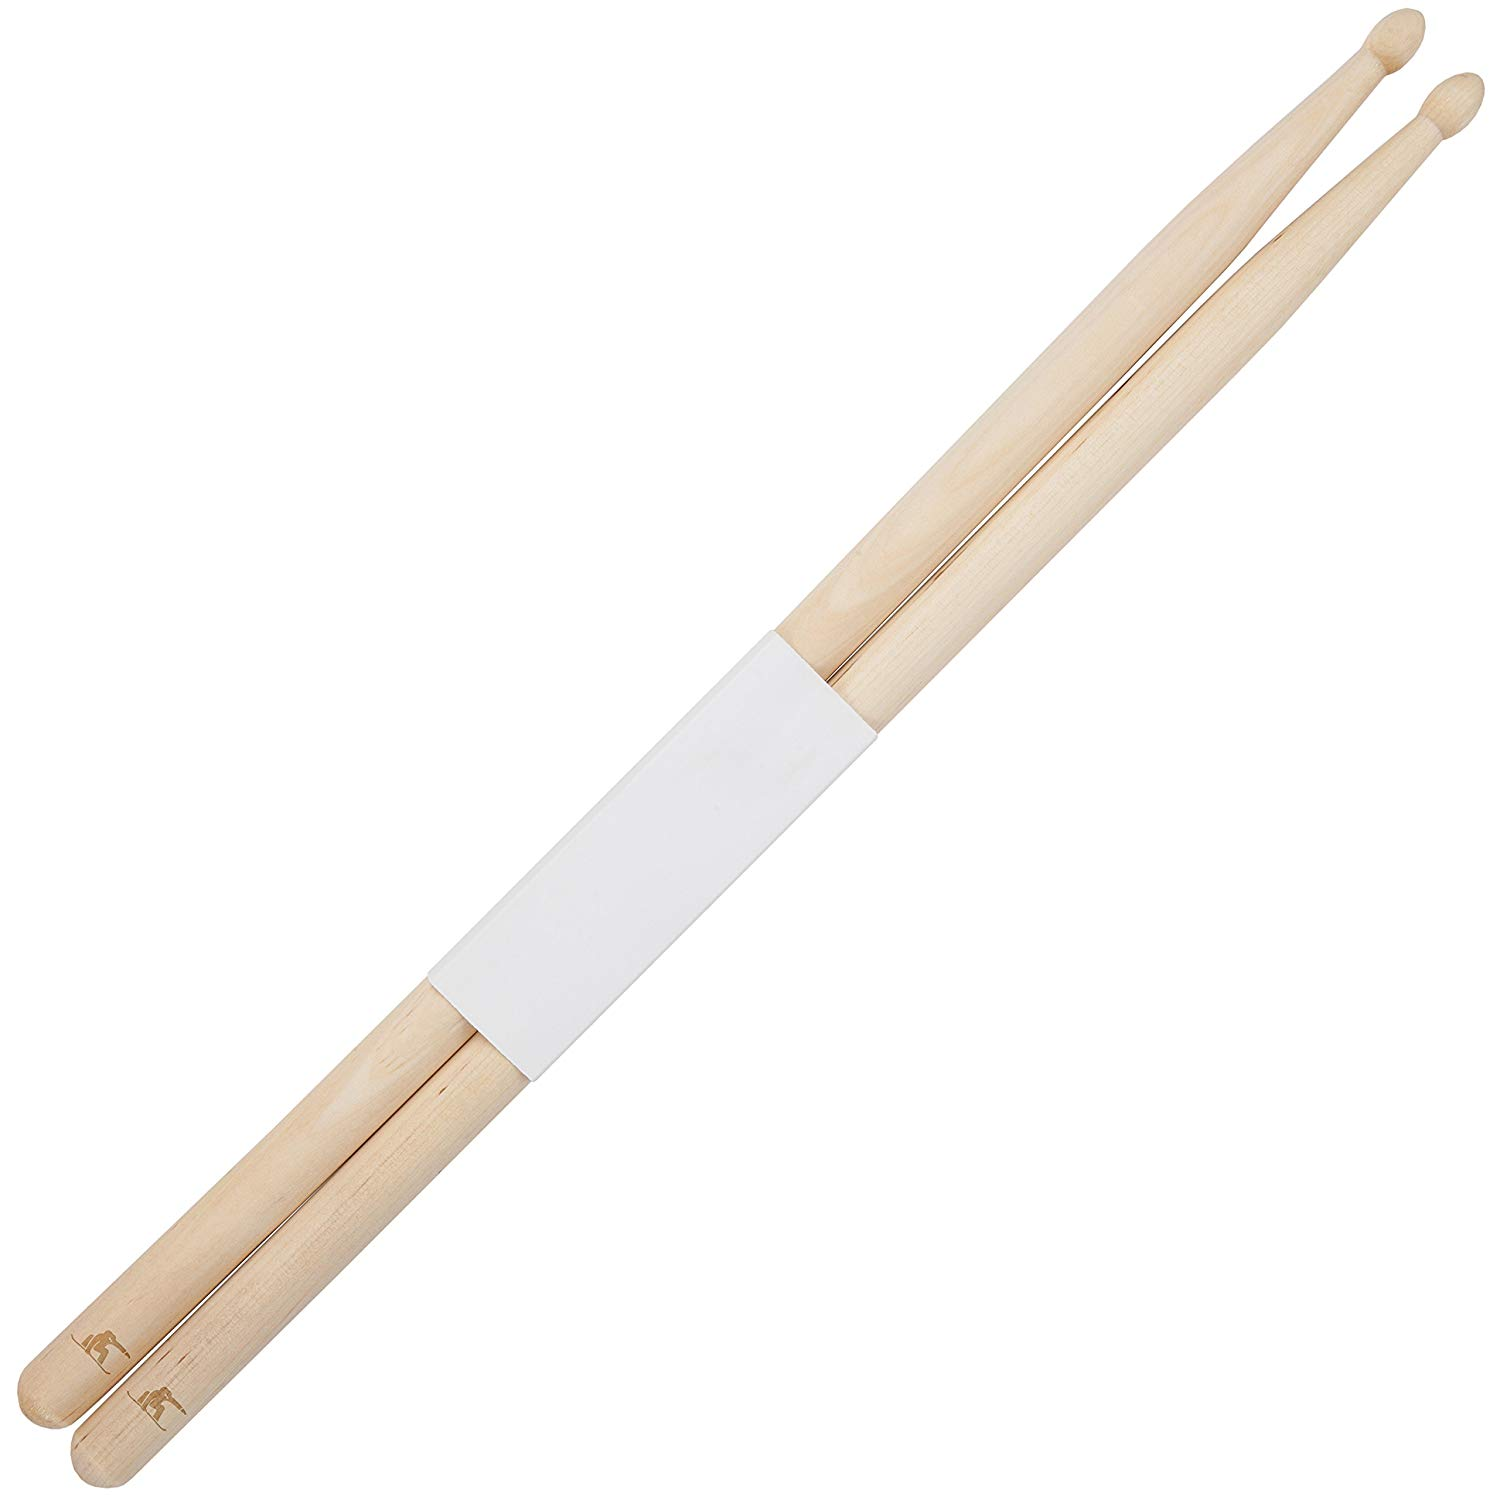 Snowboarding 5B Maple Drumsticks With Laser Engraved Design - Durable Drumstick Set With Wooden Tip - Wood Drumsticks Gift